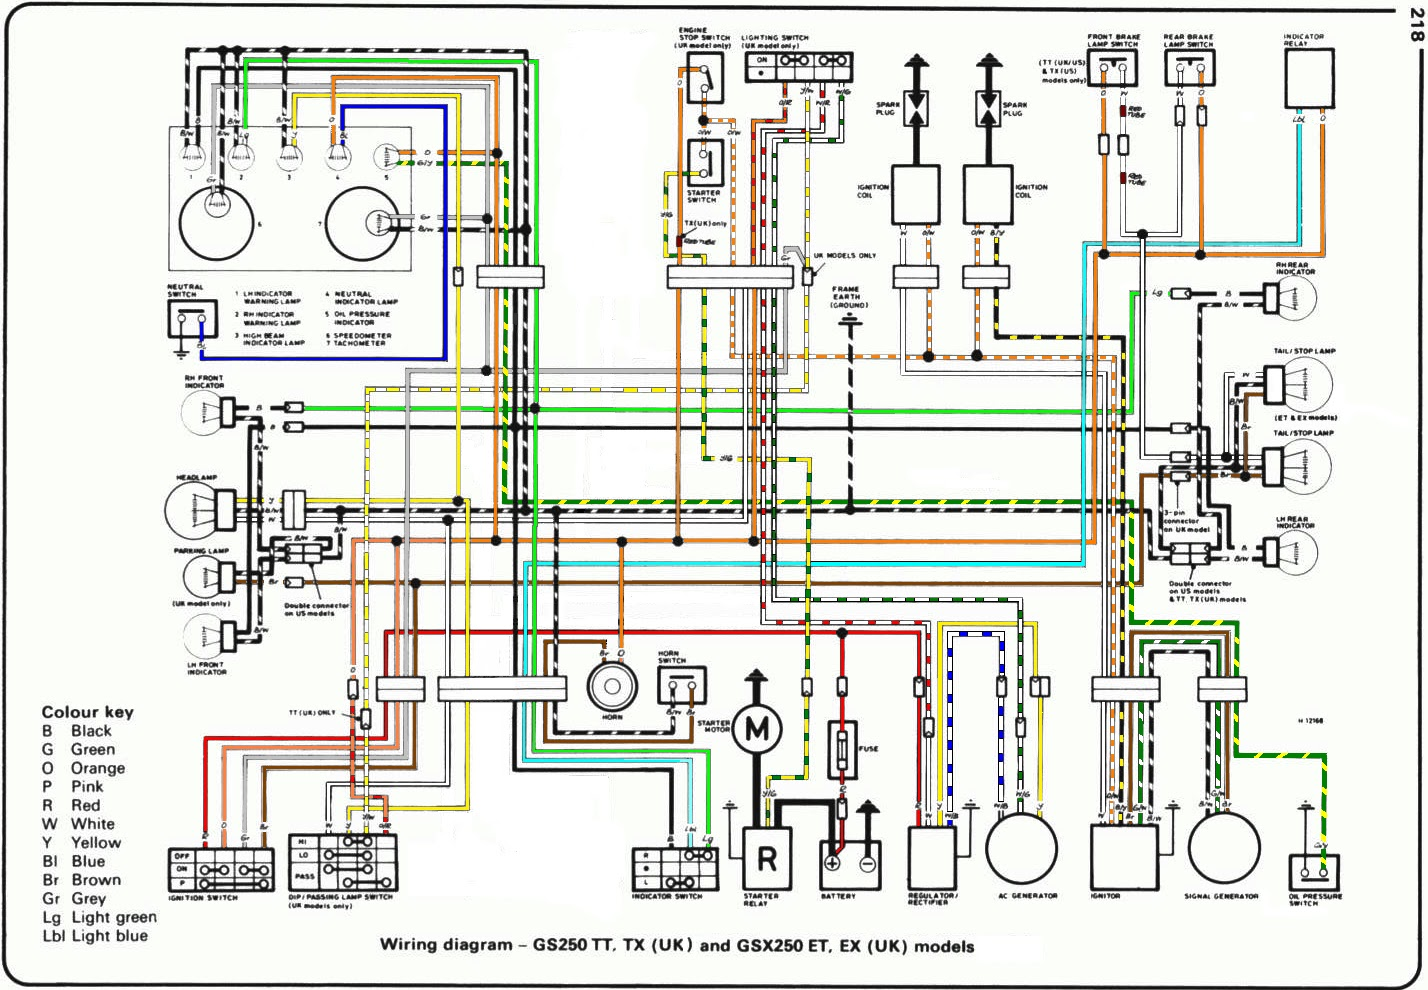 Suzuki Dr650 Wiring Diagram Detailed Diagrams 2006 Sv650 Schematic U2022 For Free Kawasaki